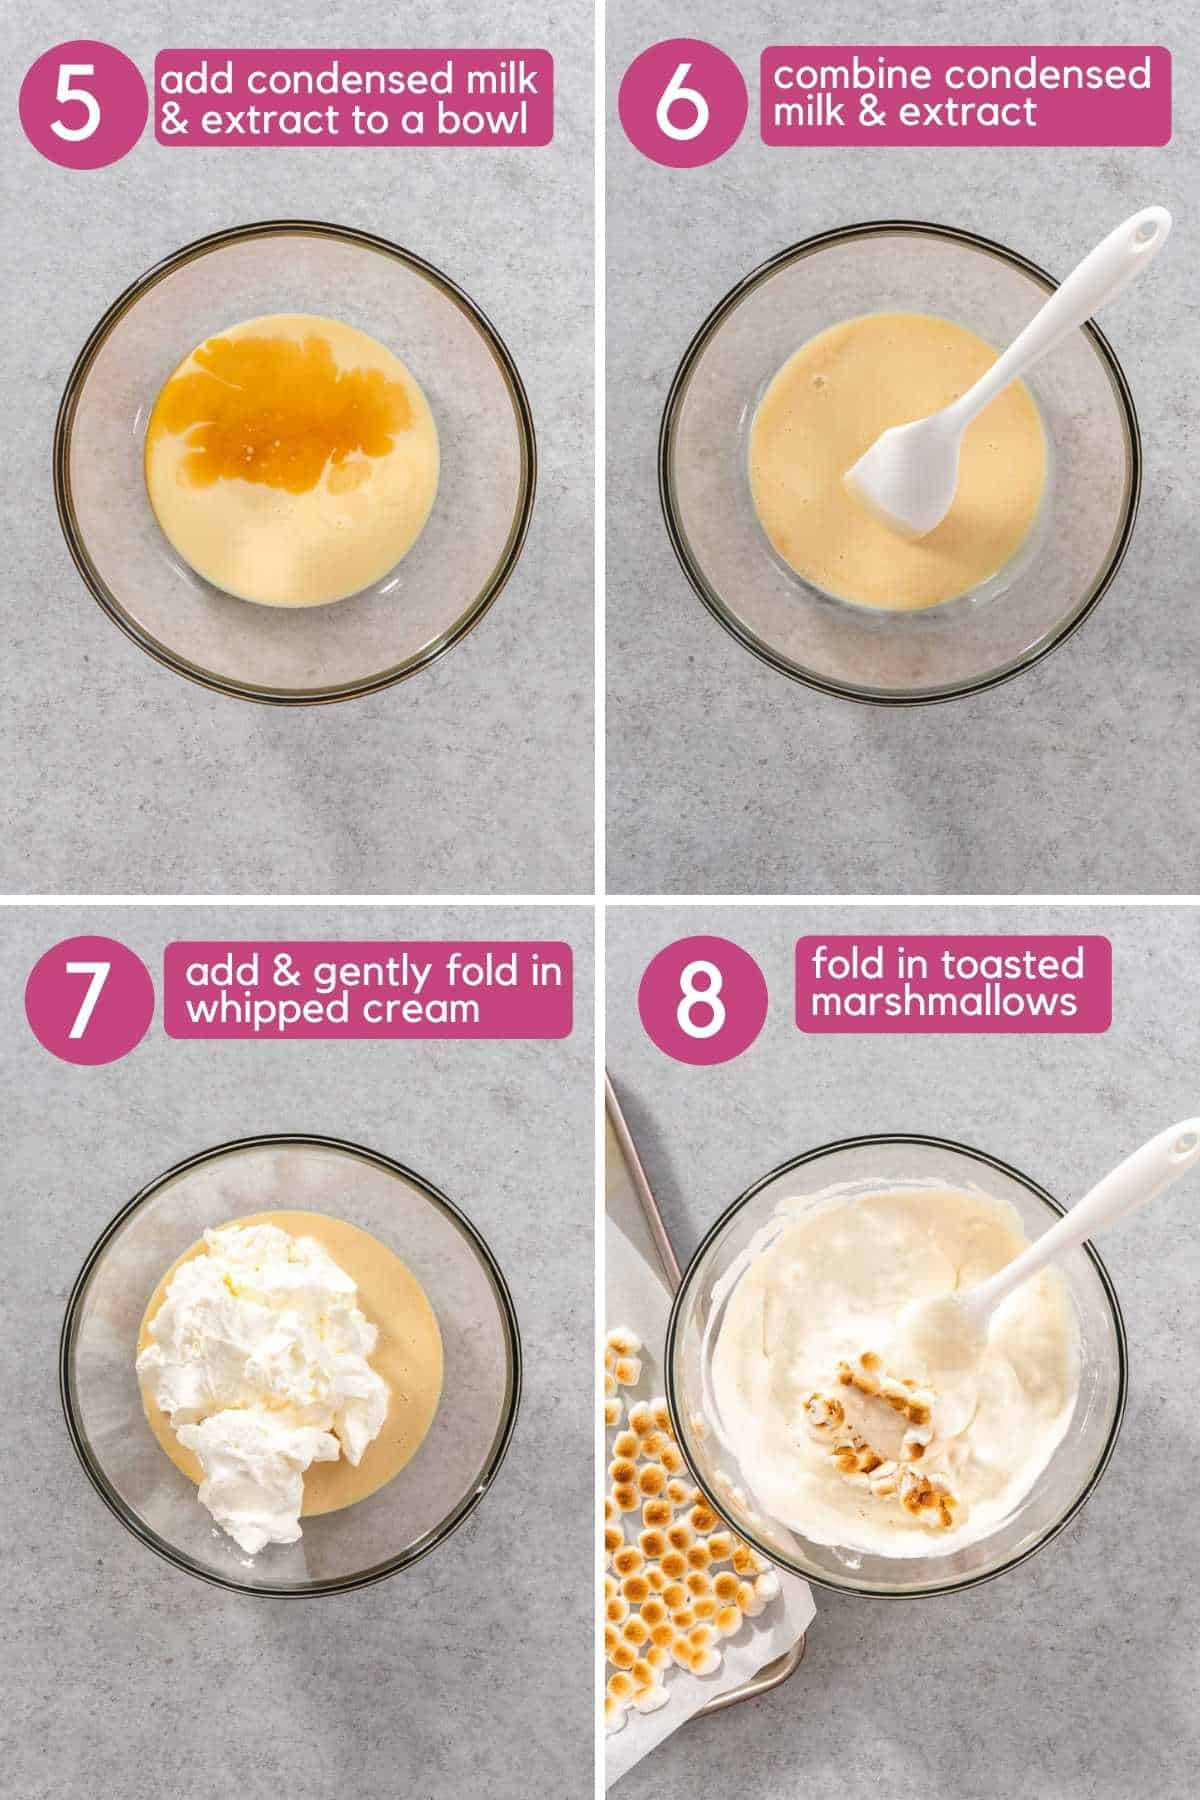 how to fold in whipped cream and toasted marshmallows.